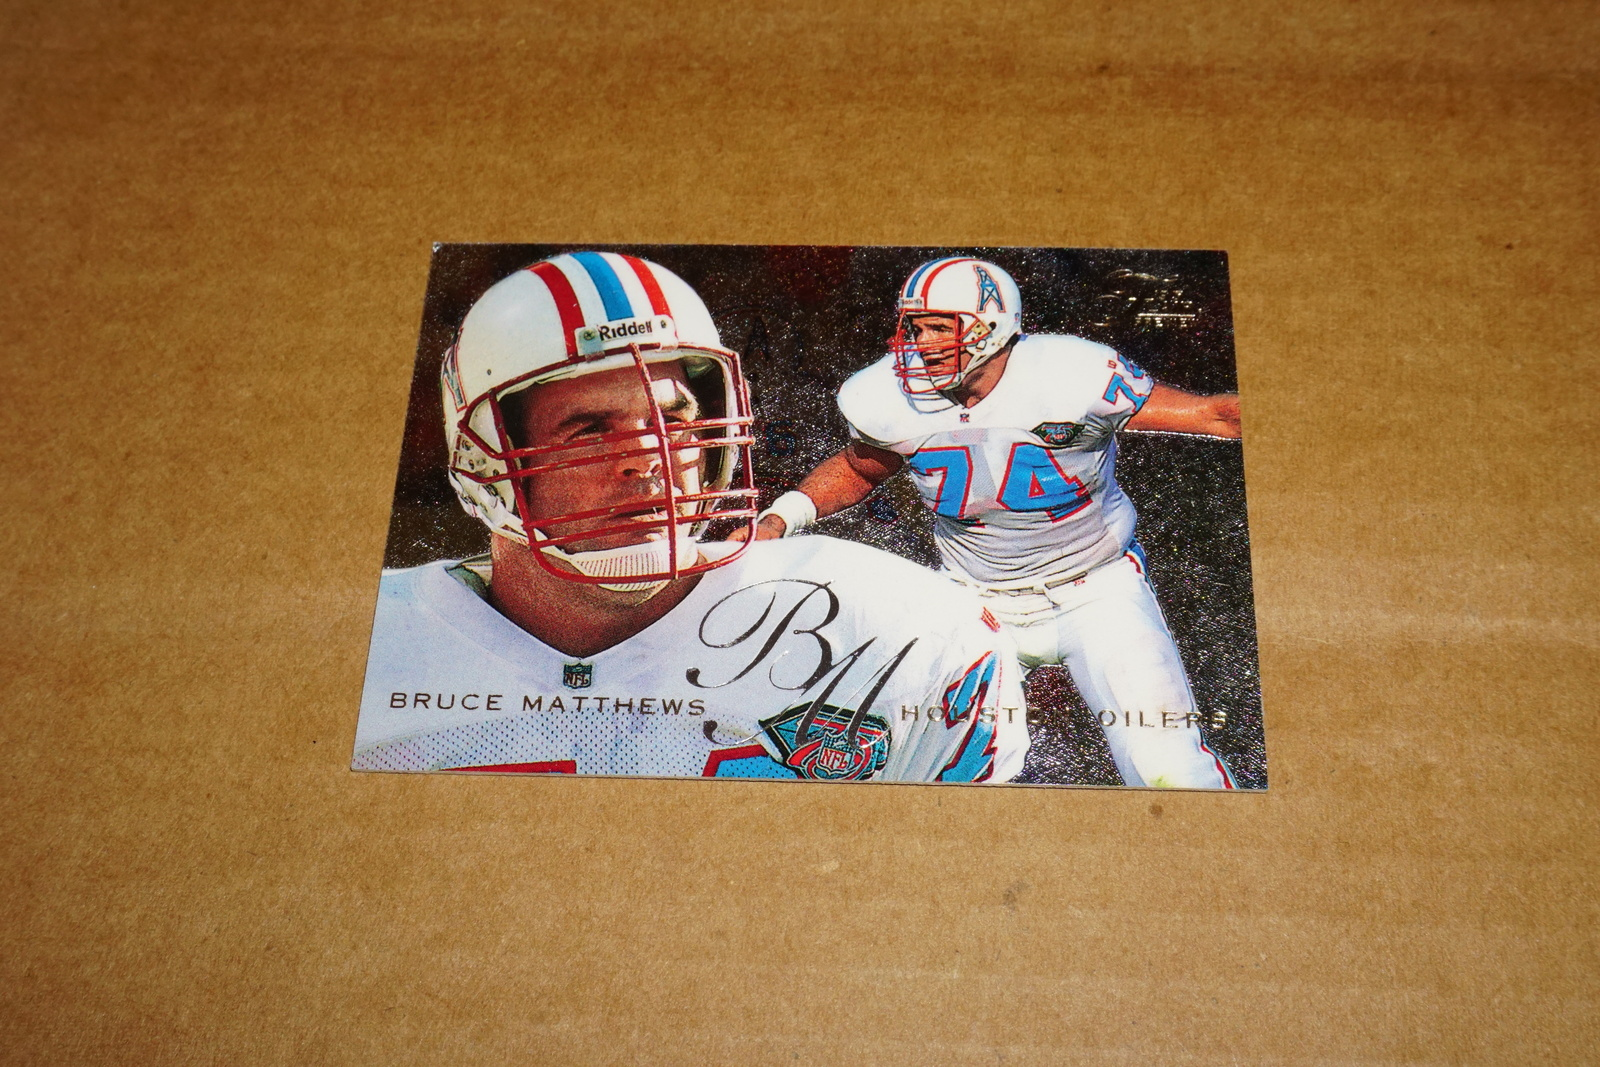 1995, Houston Oilers, Bruce Matthews 12 out of 30, NFL Card